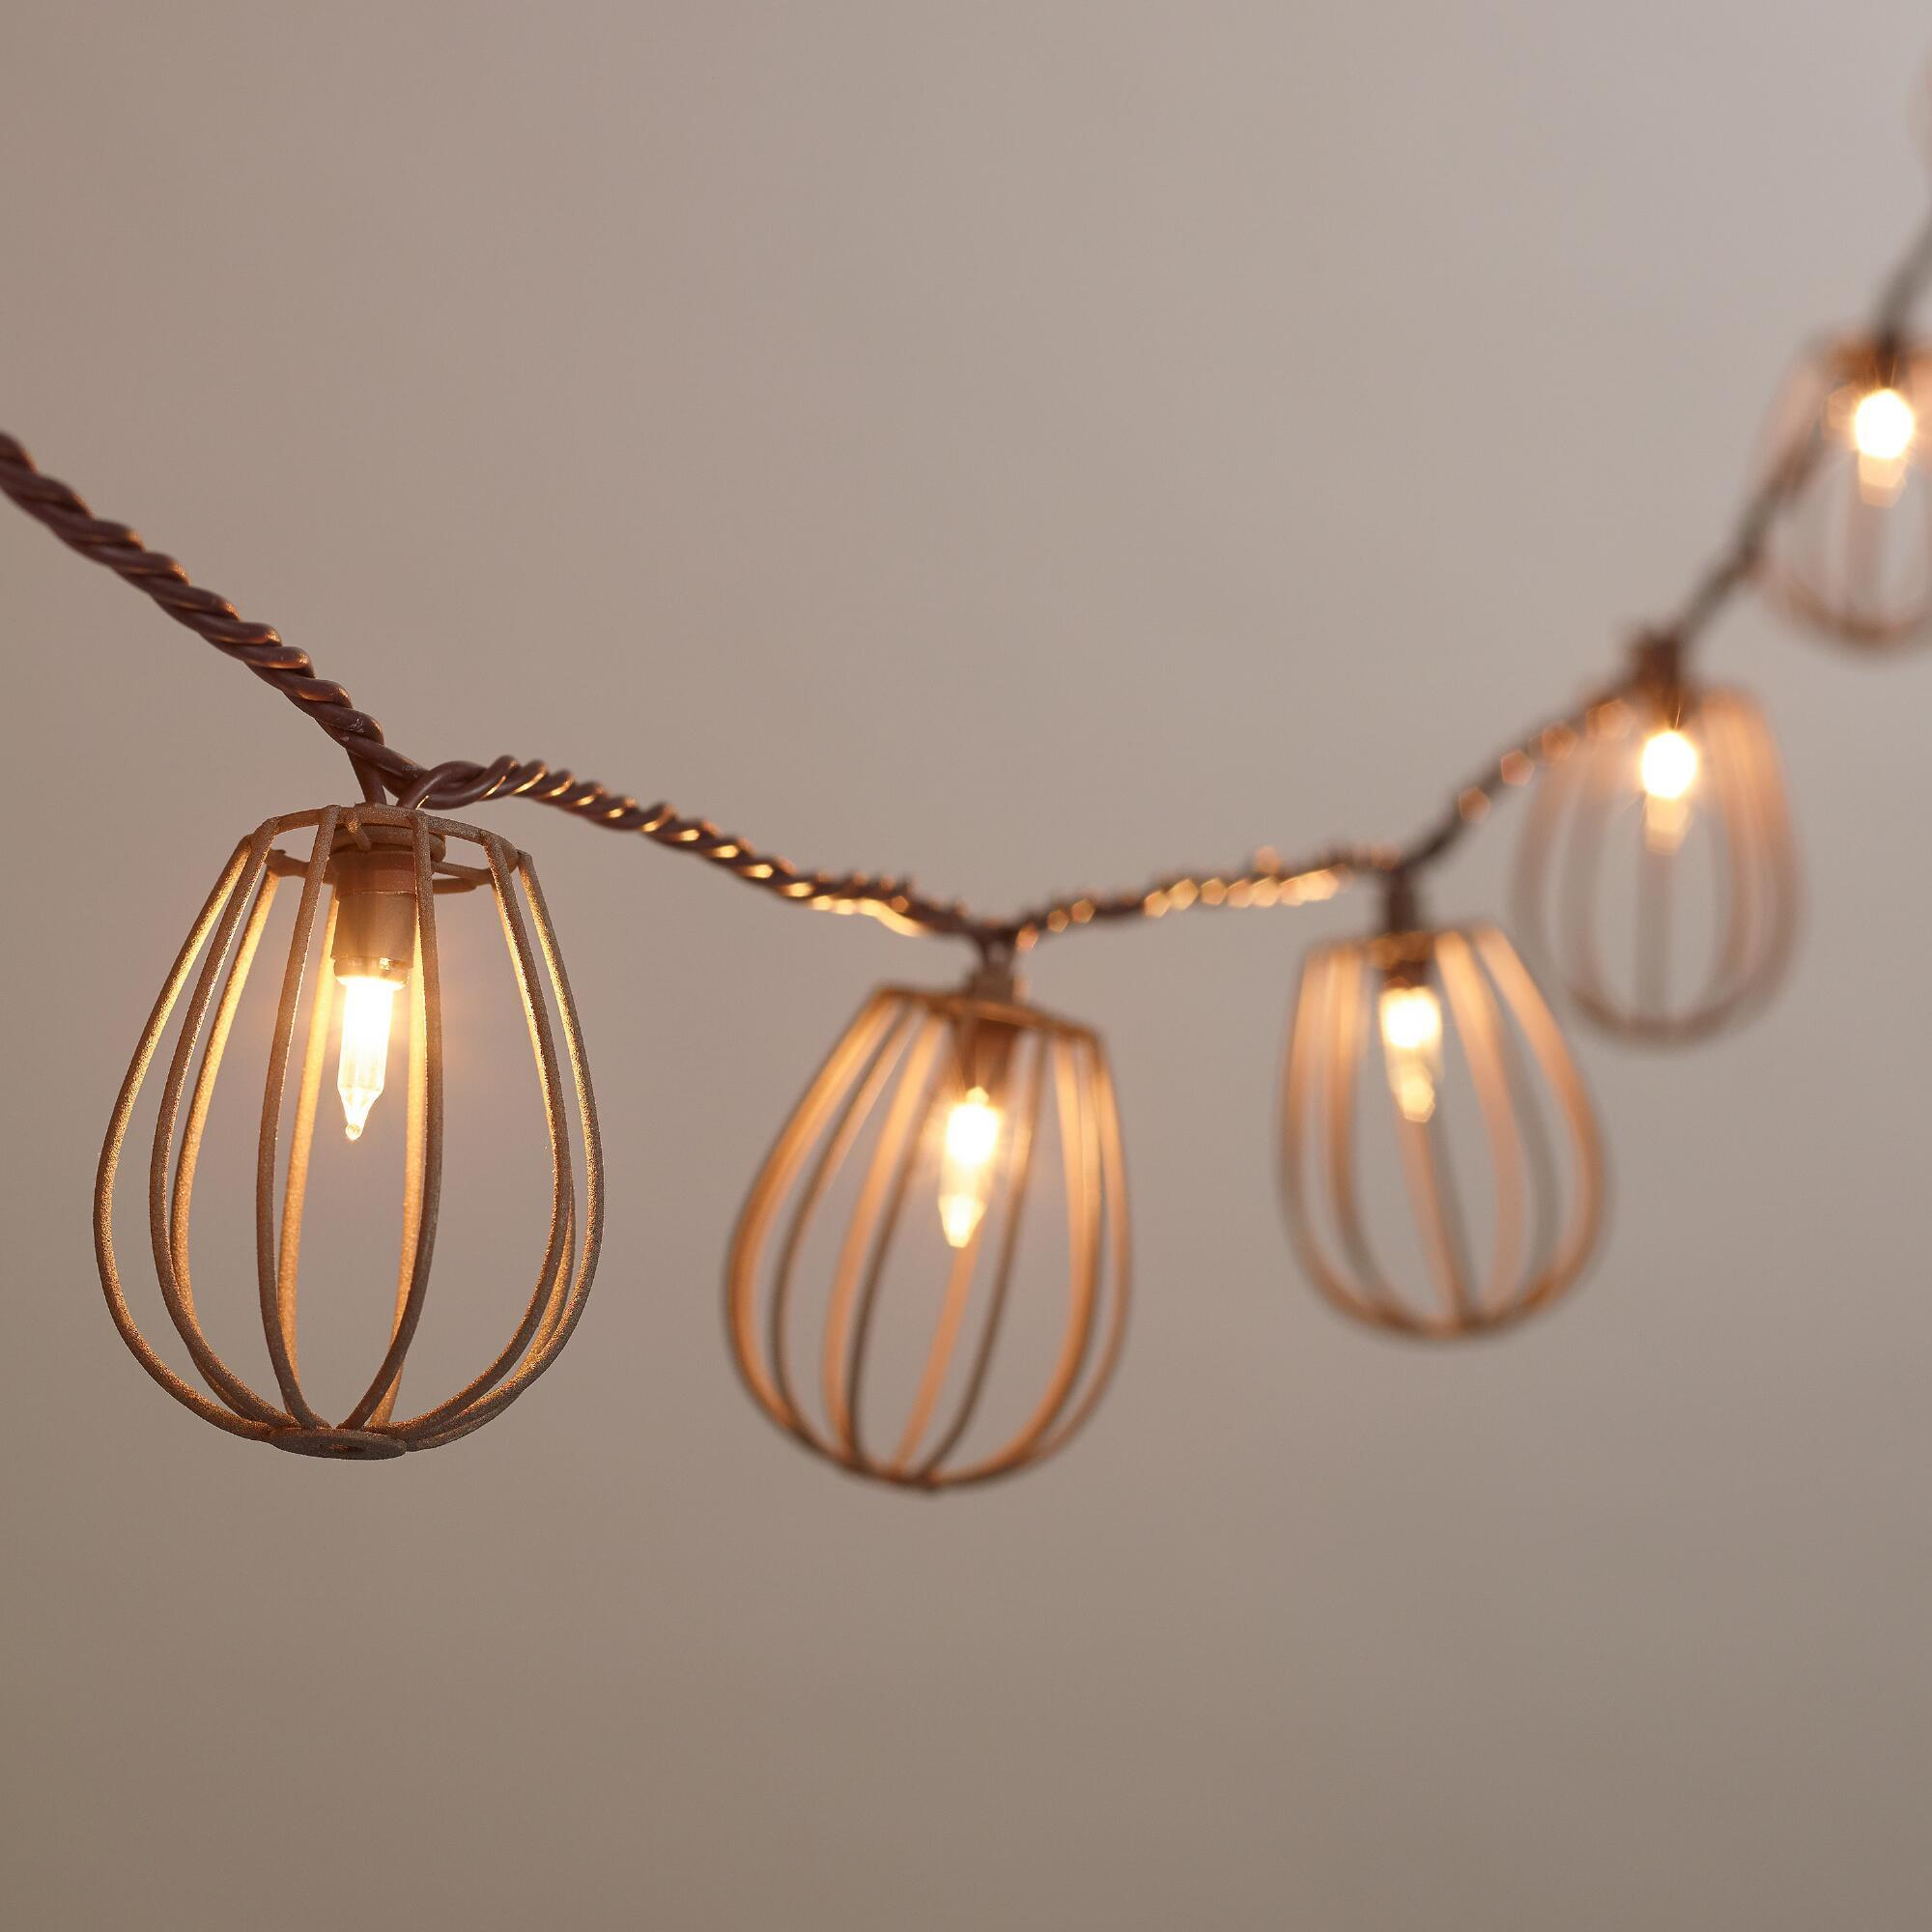 Rustic Wire Cage 10-Bulb String Lights from Cost Plus World